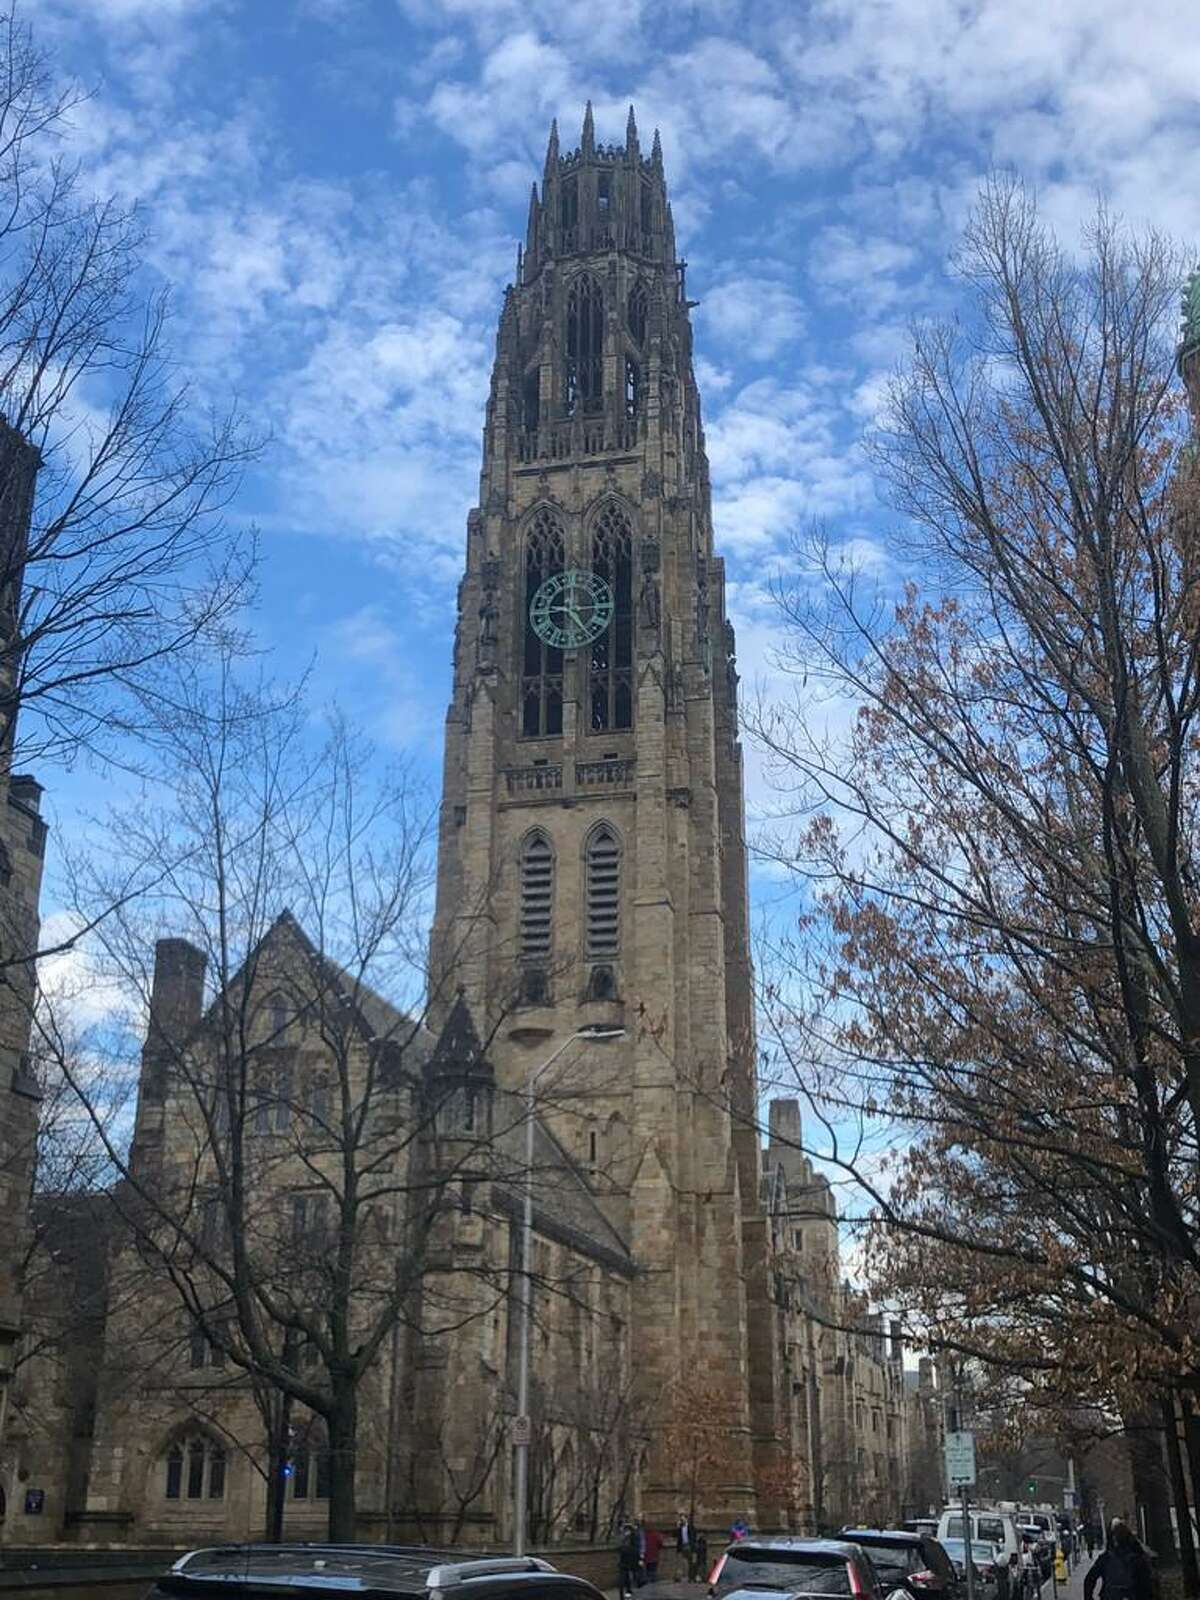 Harkness Tower, home of the Yale Memorial Carillon, at Yale University on High Street in New Haven.